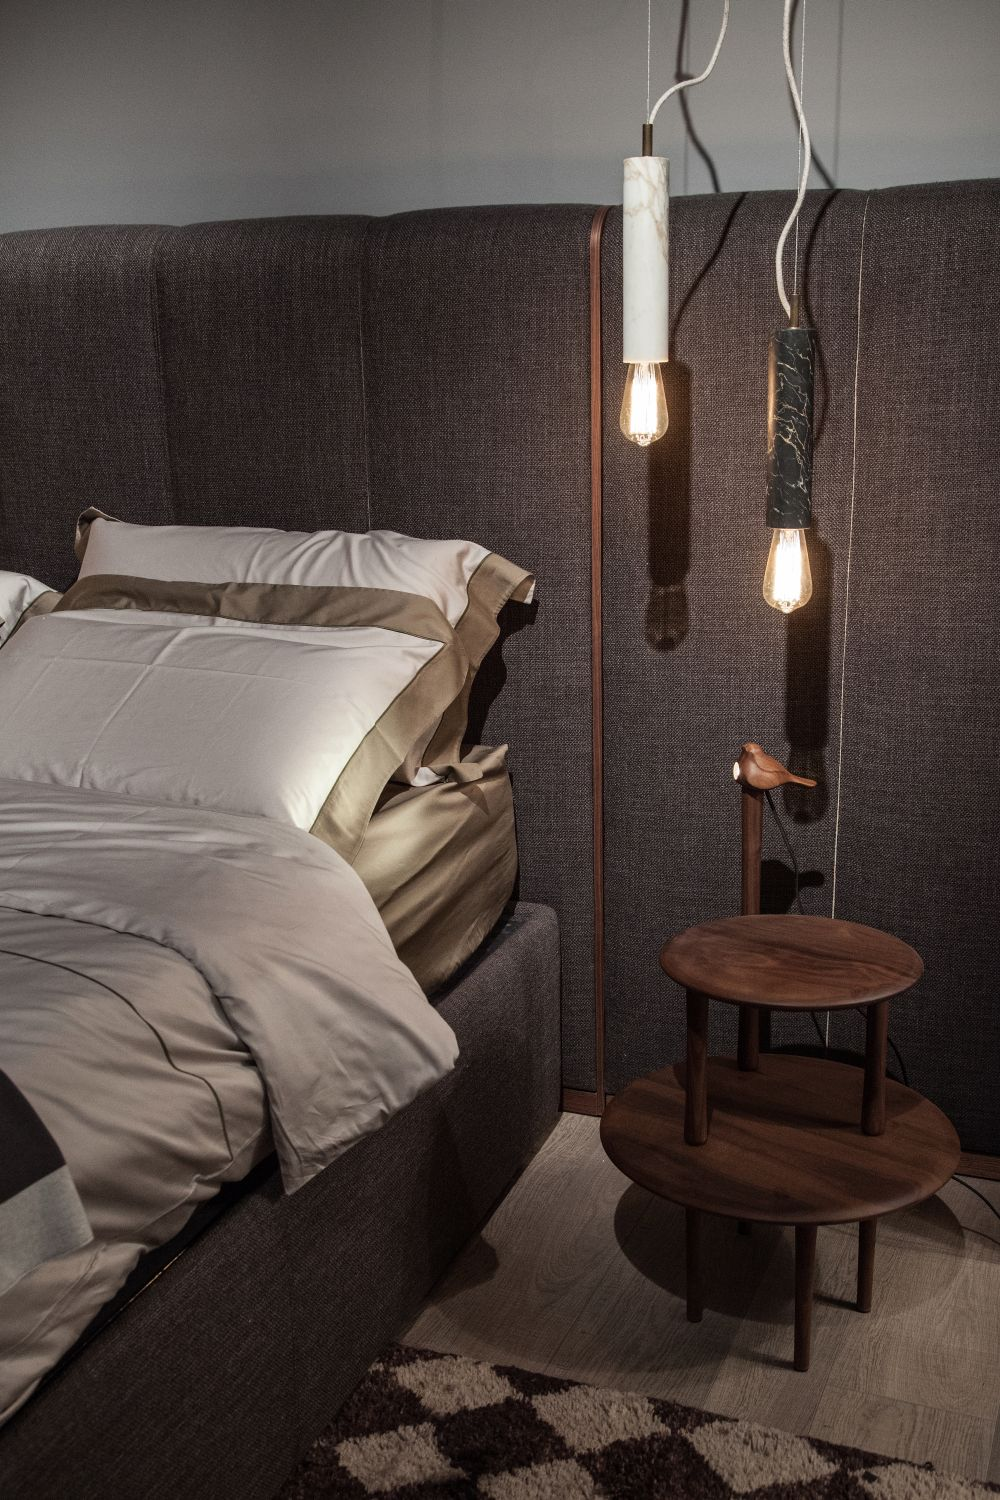 Instead of the usual table lamp, perhaps a hanging pendant would be a more stylish and modern option